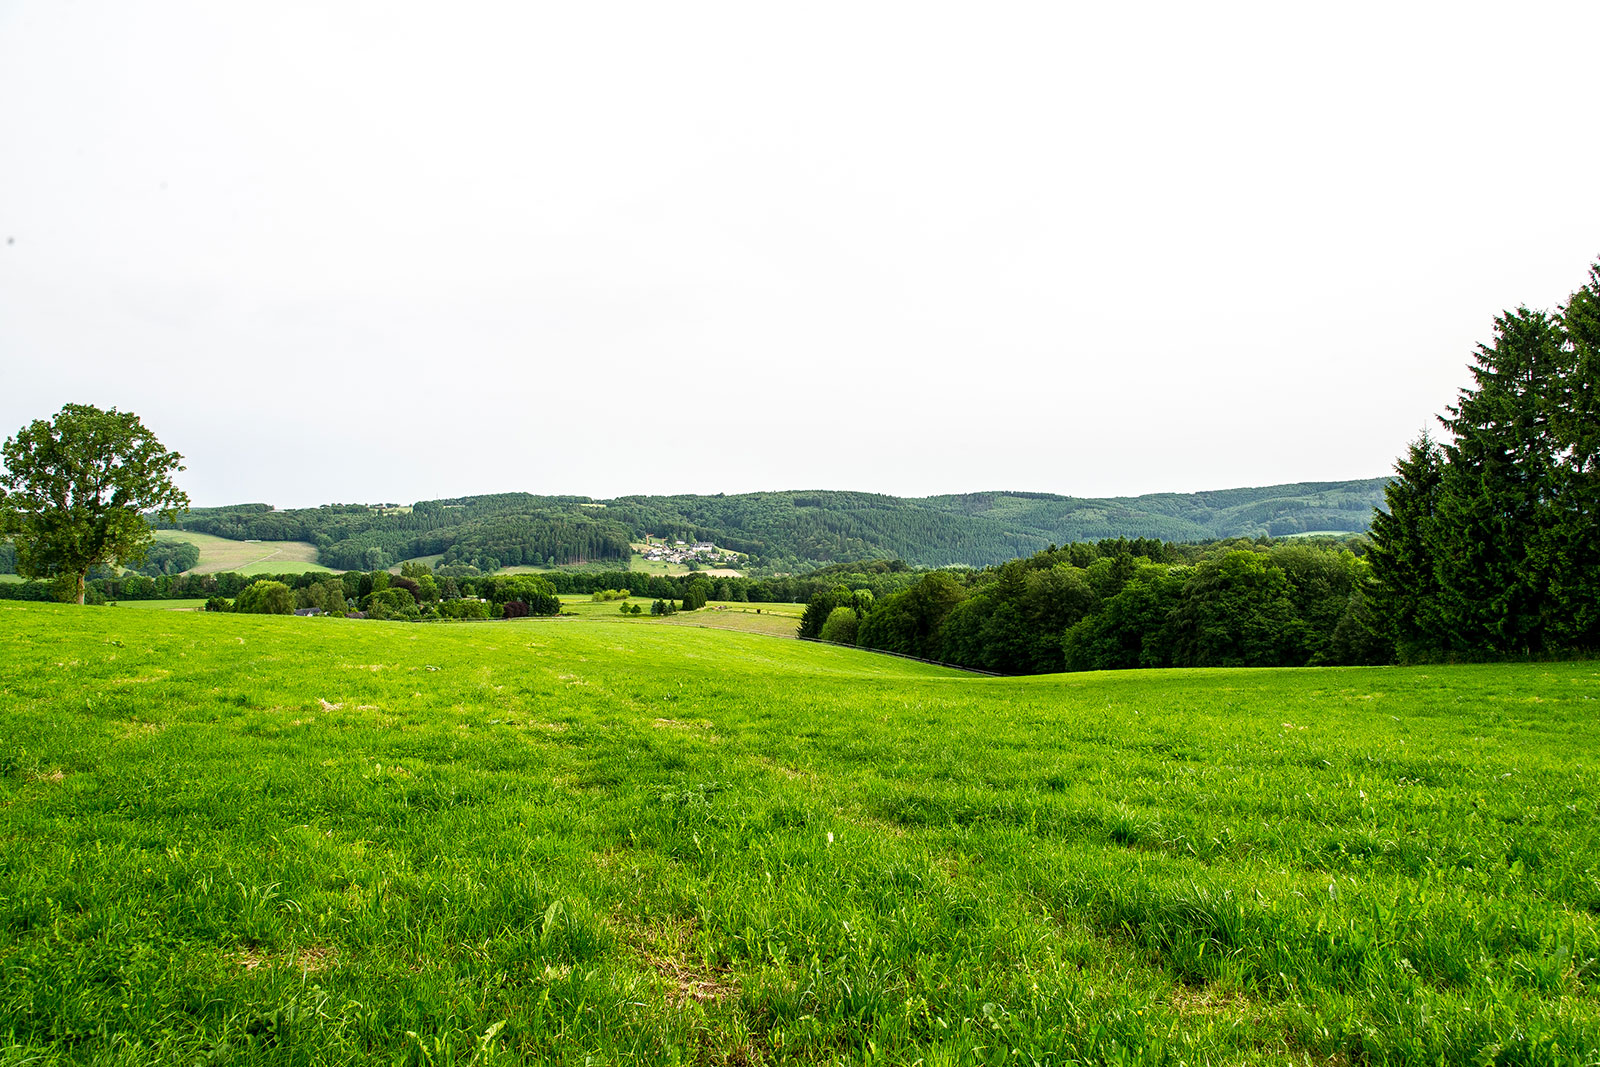 View of meadows and forests at castle Ehreshoven in germany